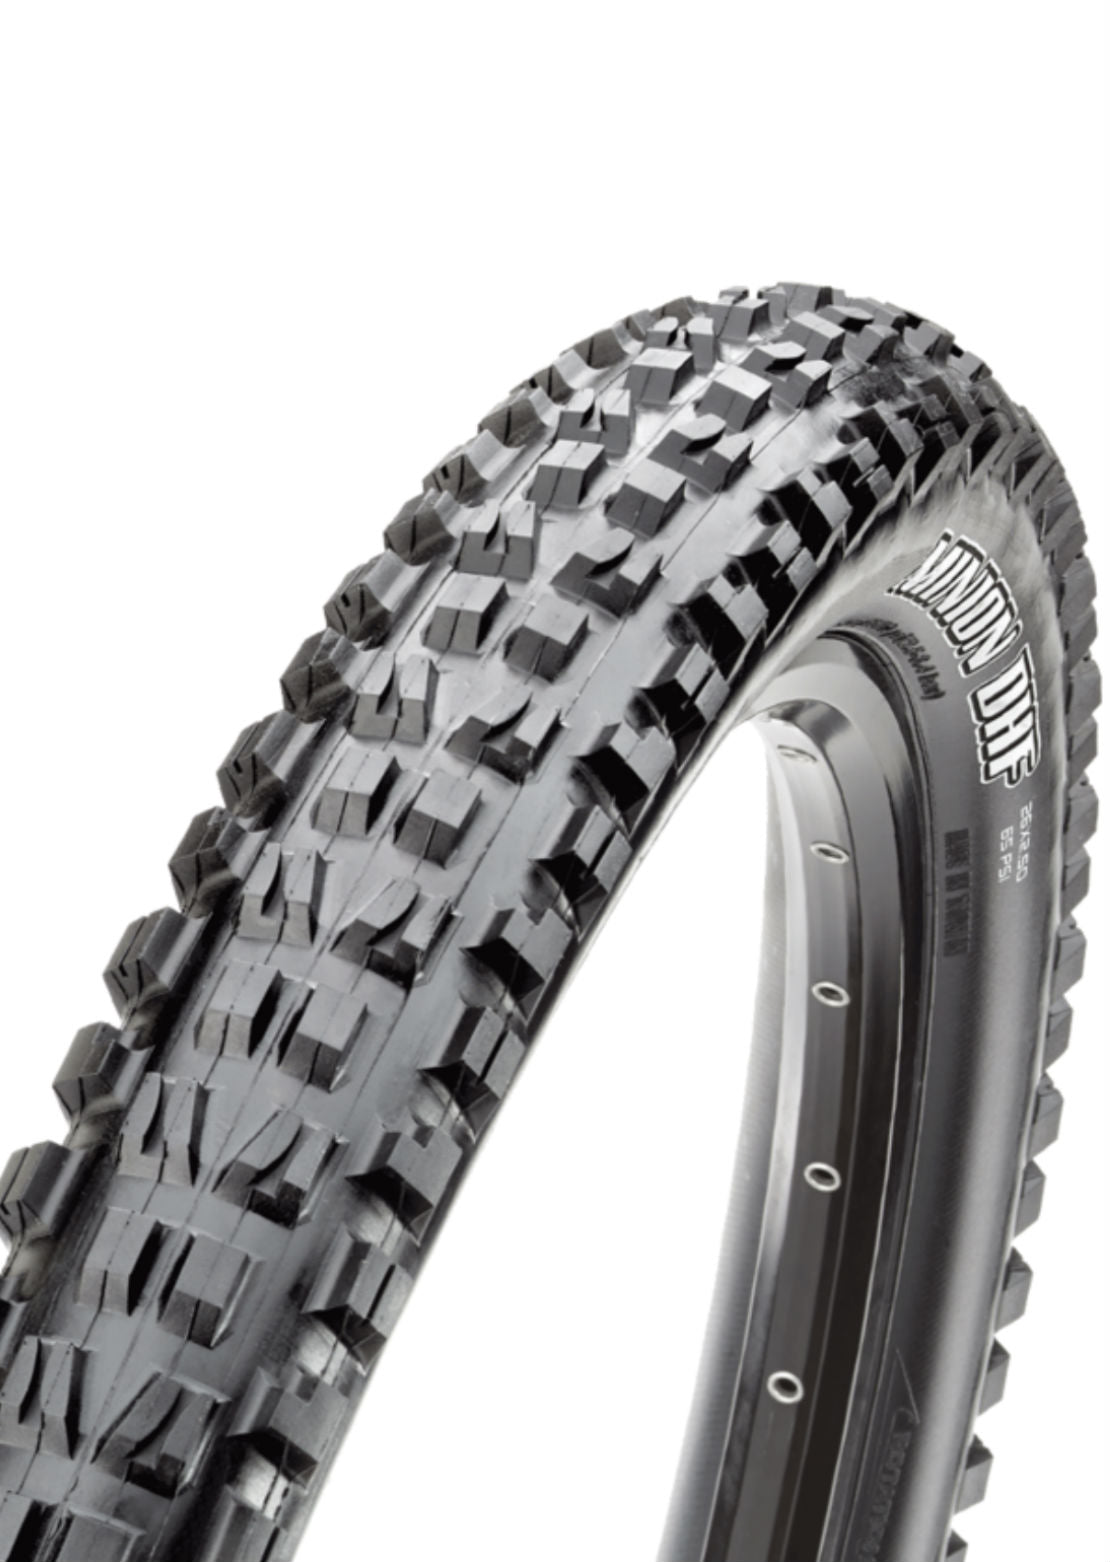 Maxxis Mountain Series Minion DHF 27.5'' x 2.50  Mountain Bike Tires